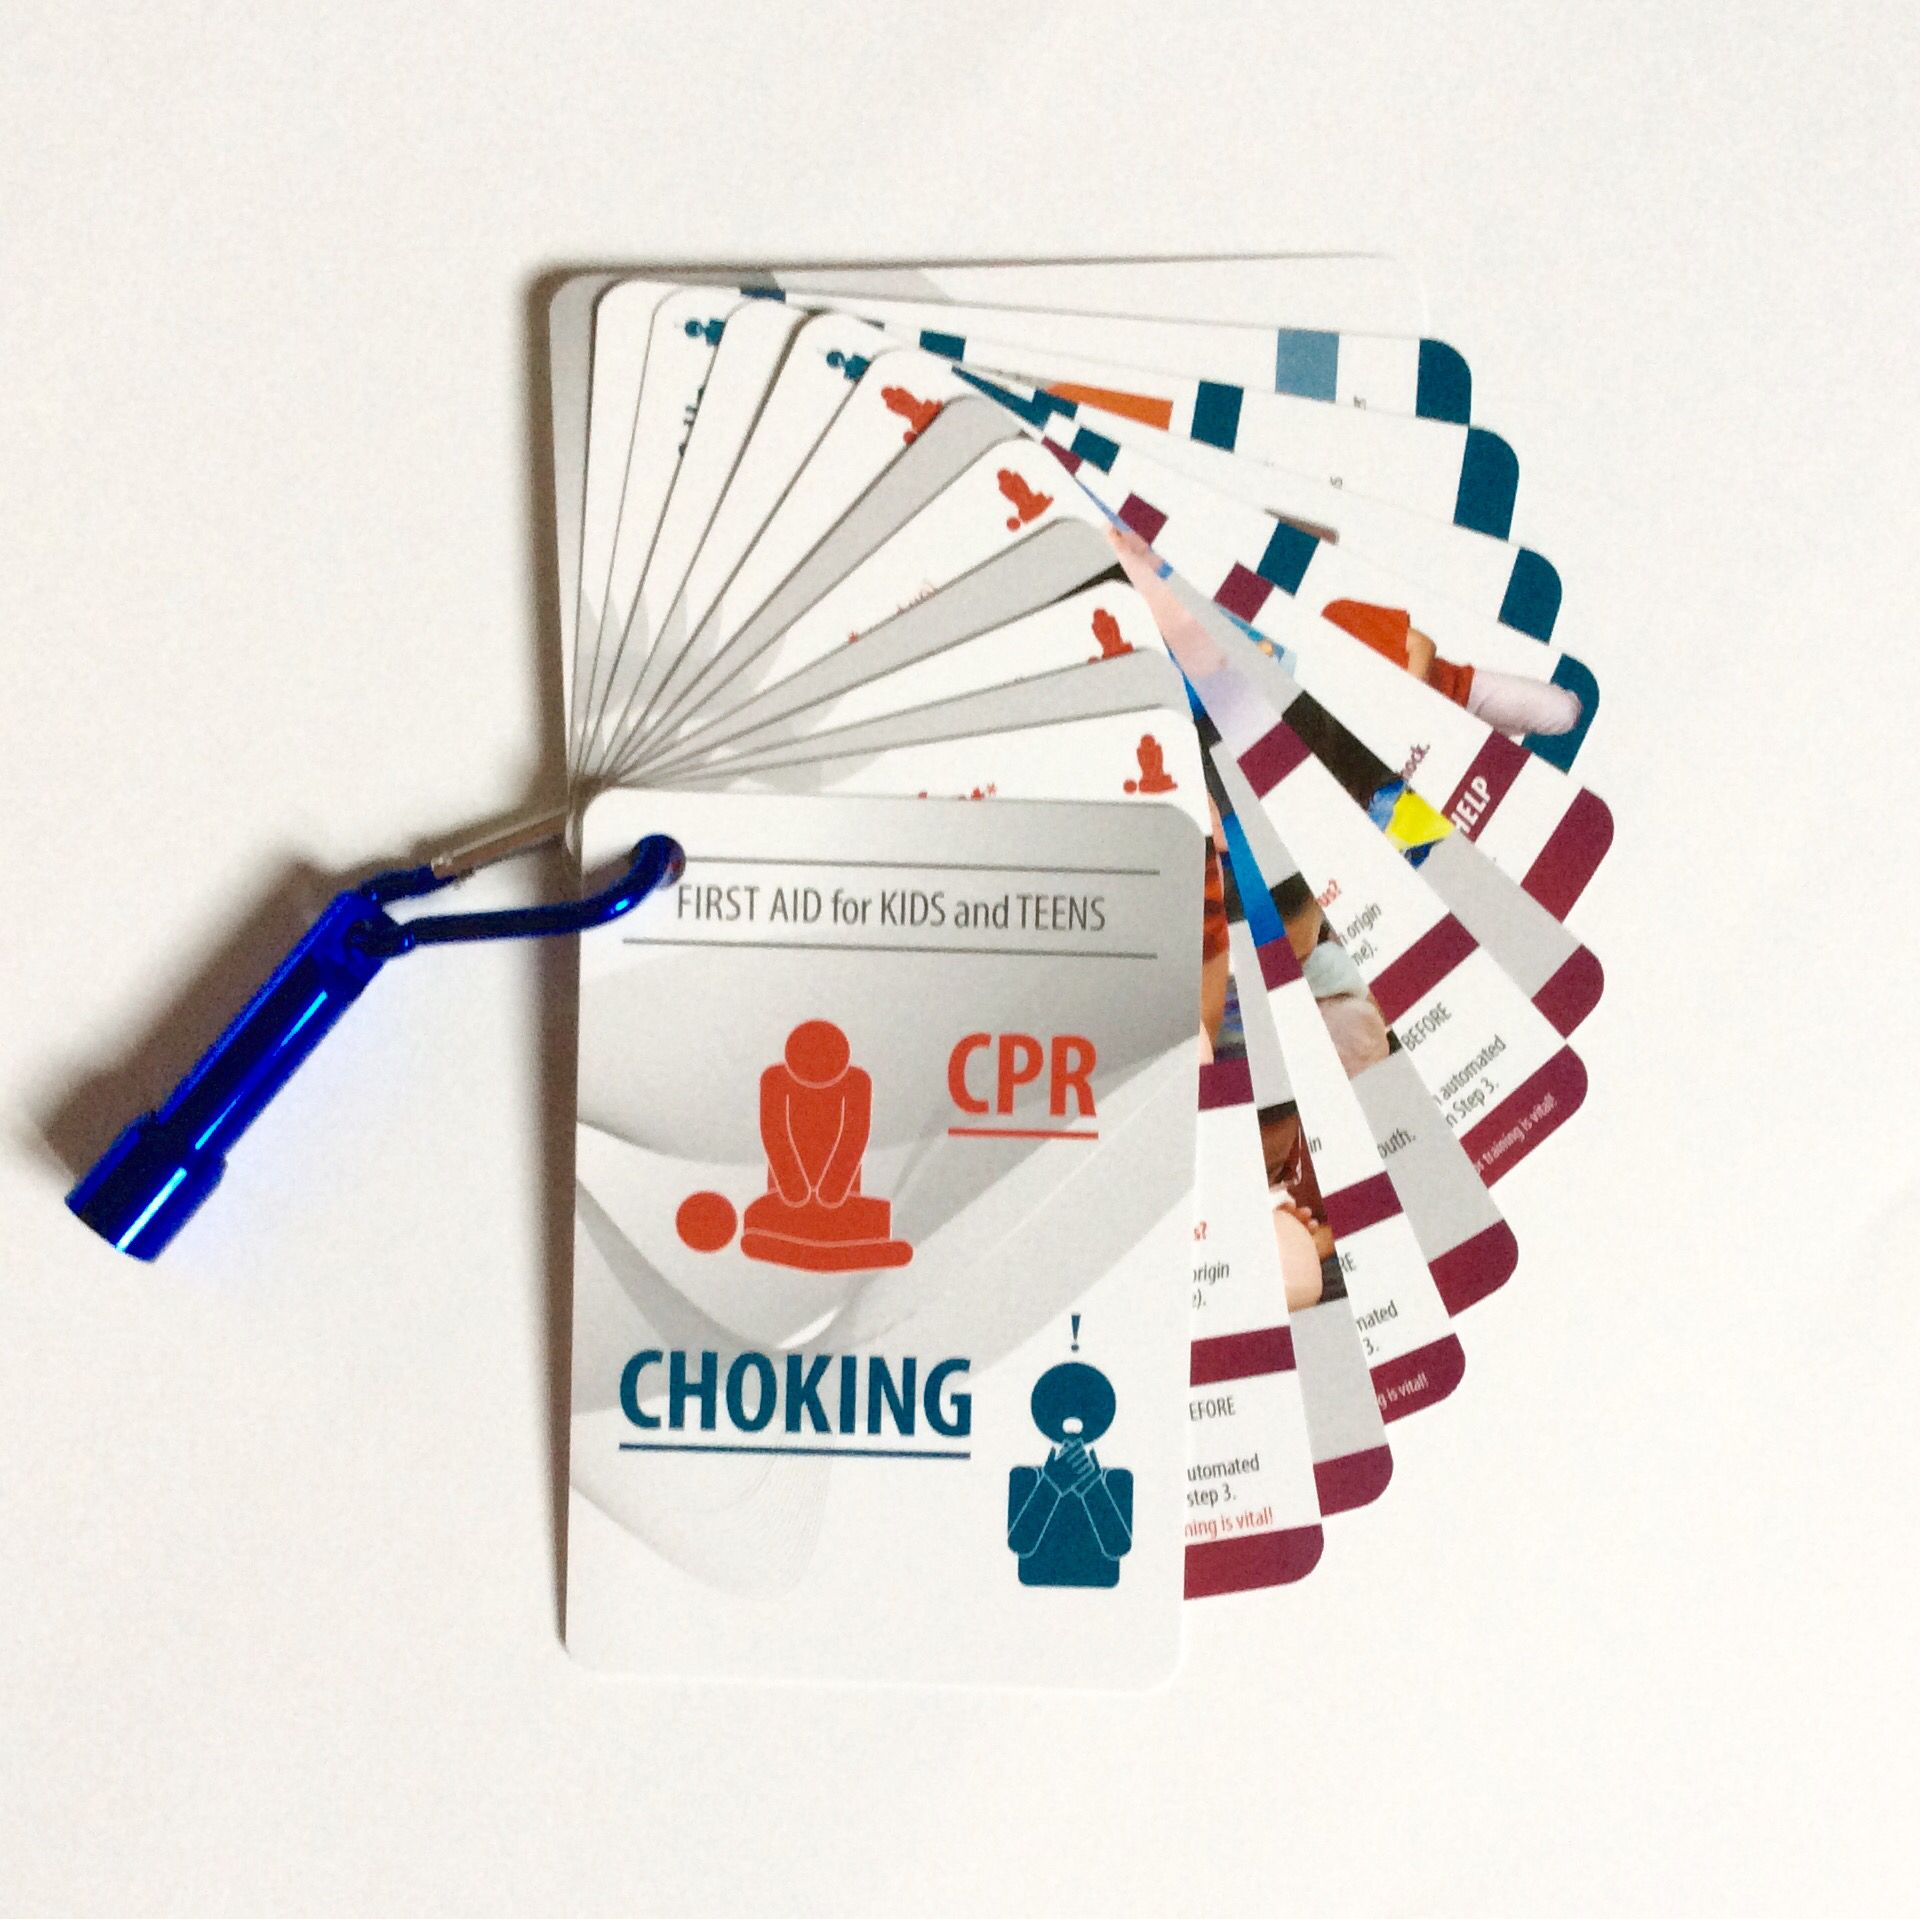 Just arrived! CPR & Choking guidelines for infants to